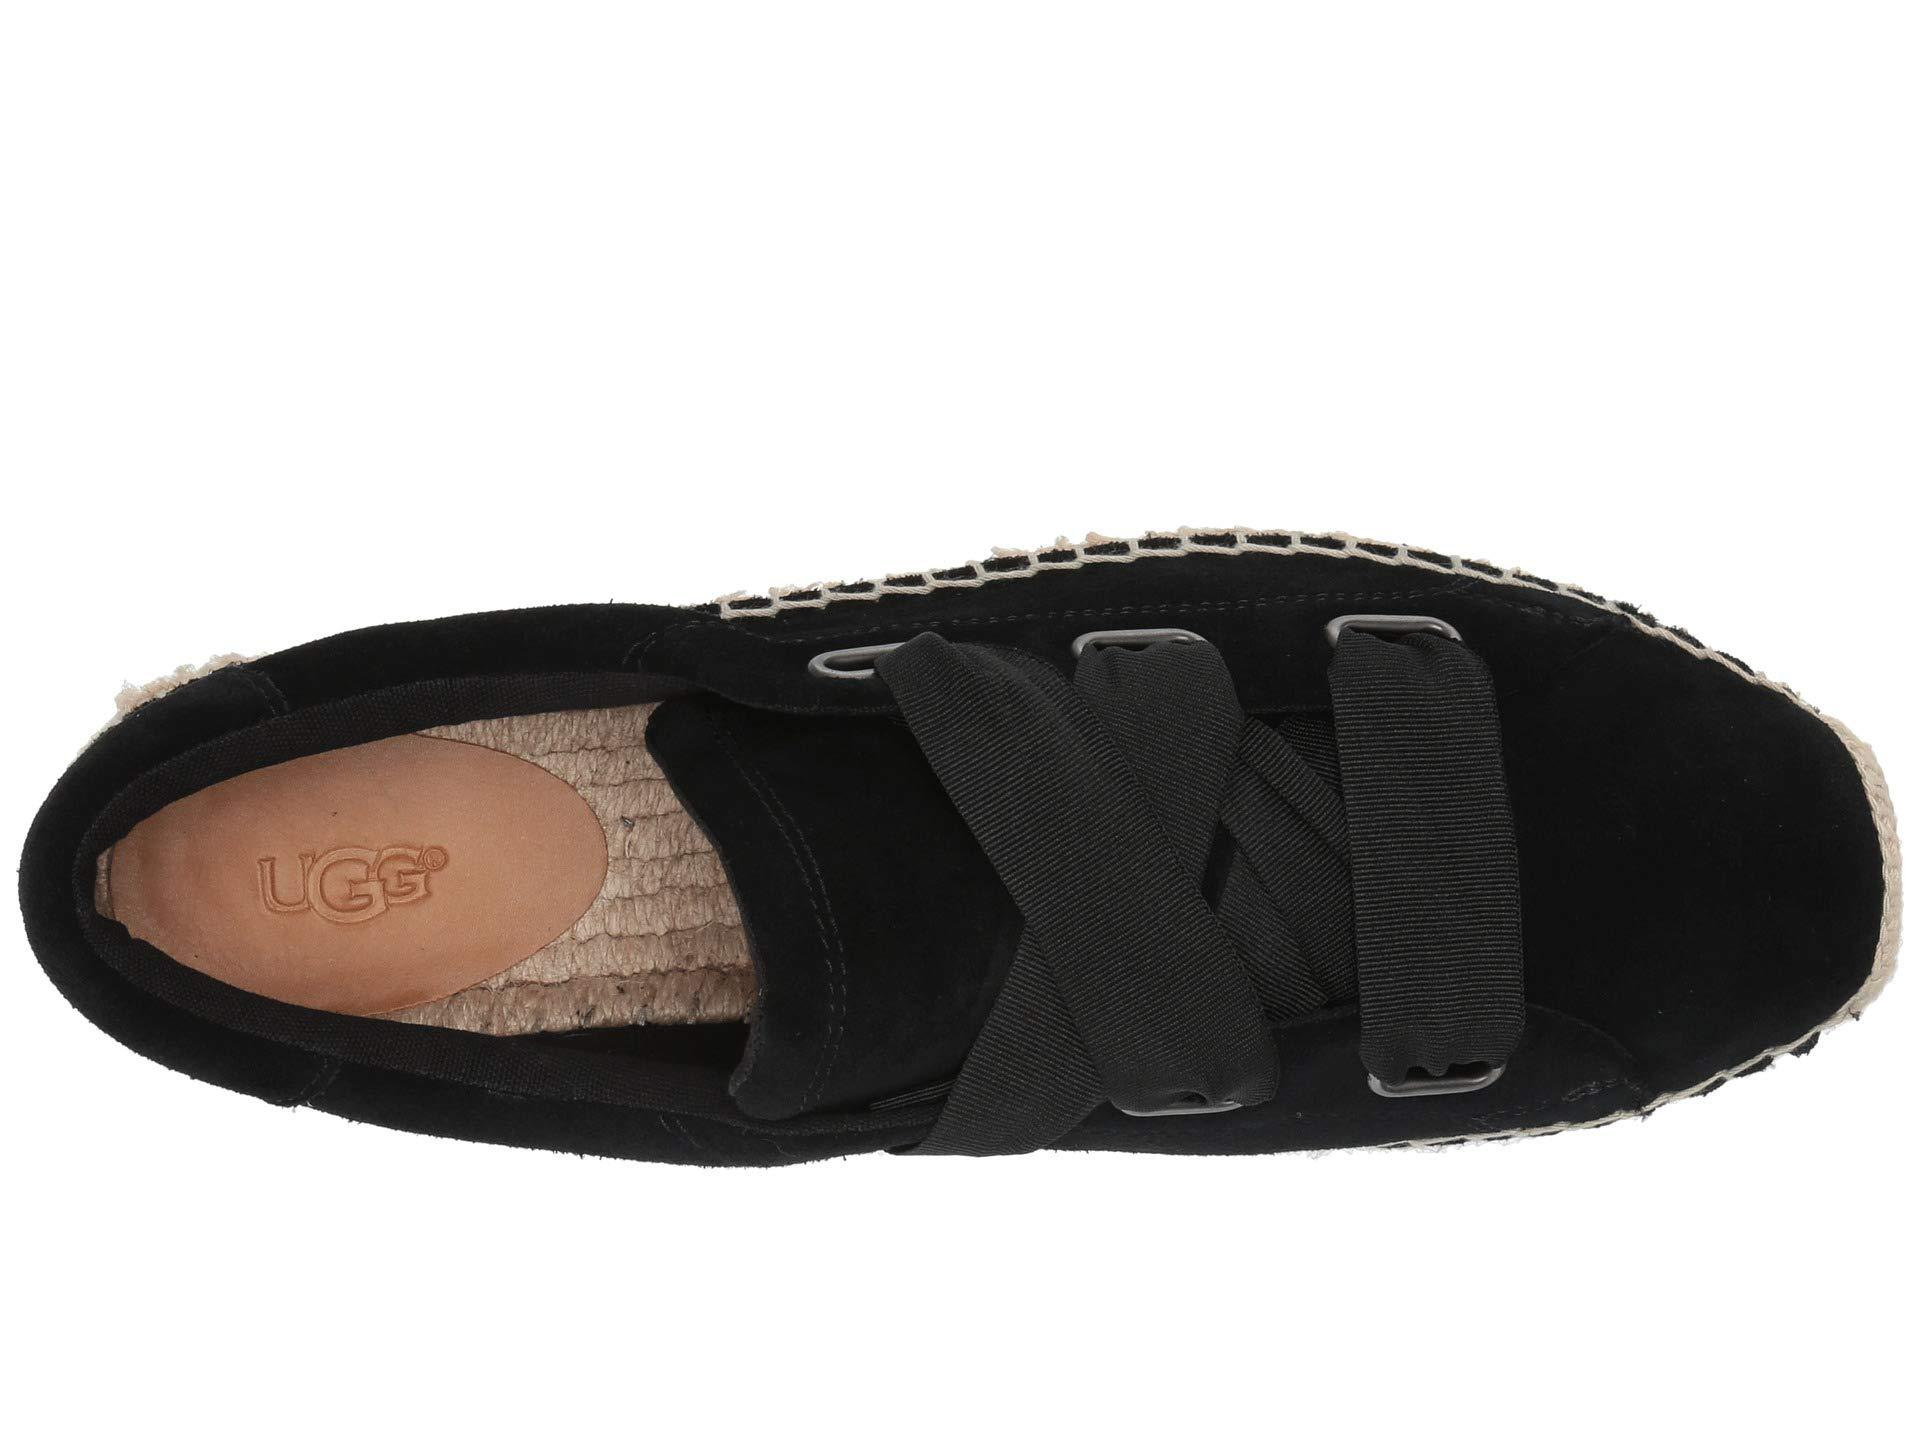 5c24195a855 Lyst - UGG Brianna (chestnut) Women's Sandals in Black